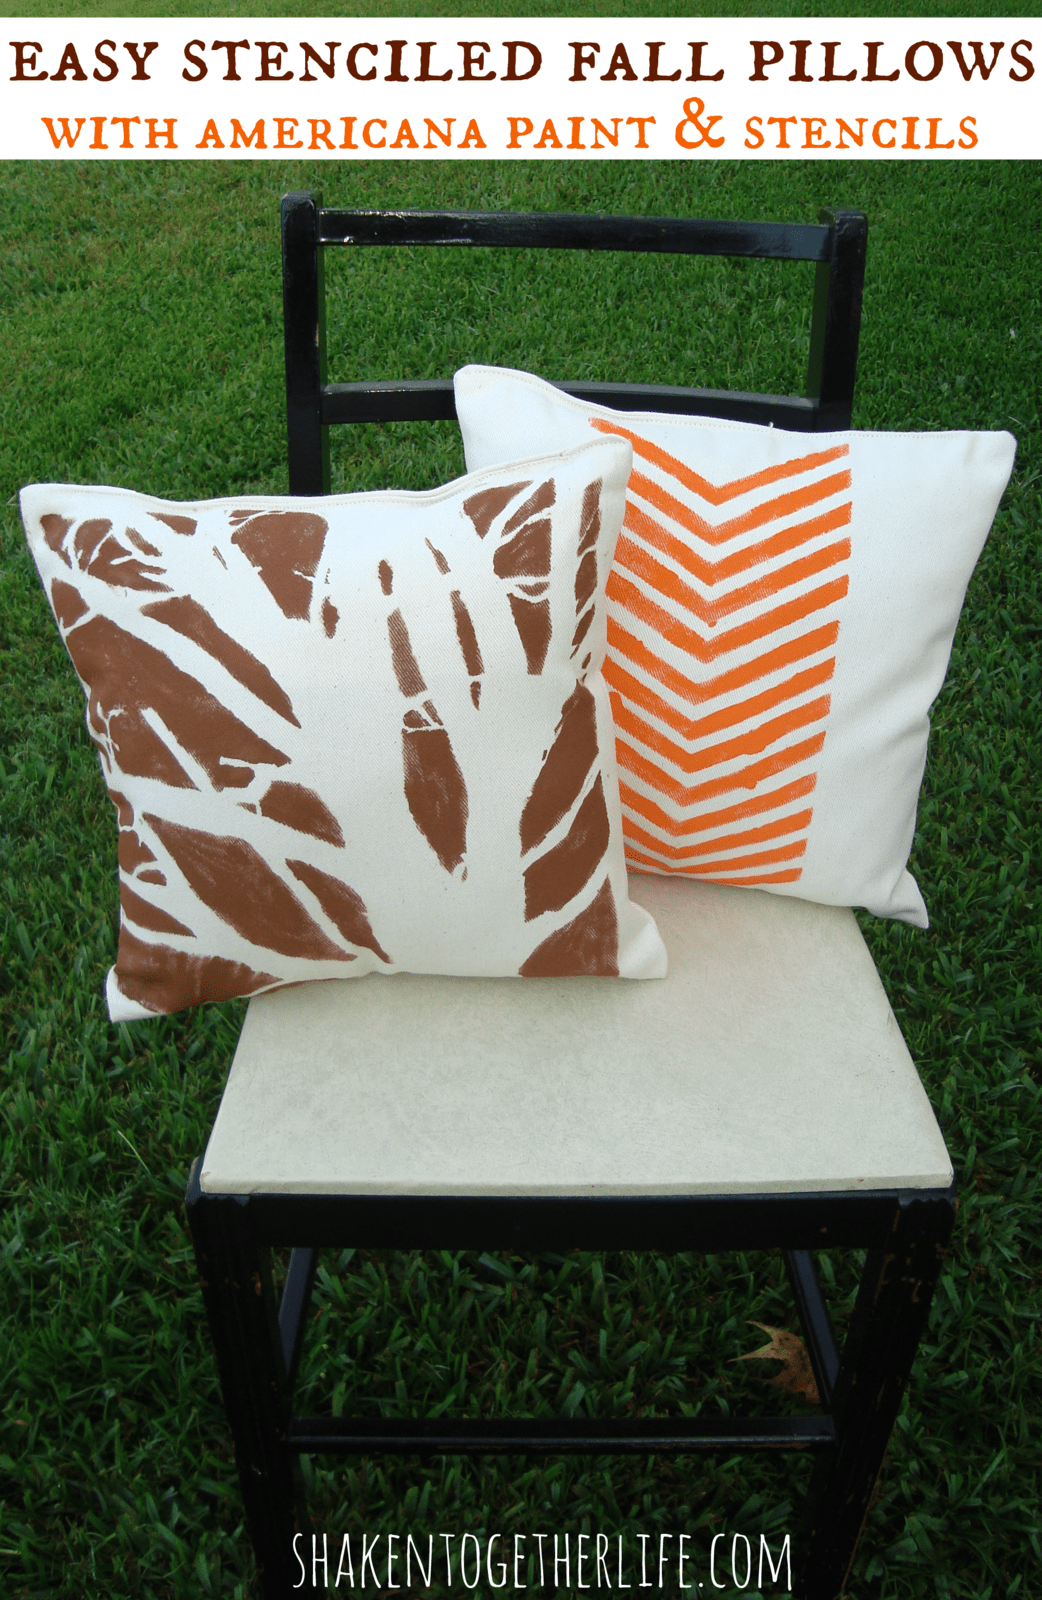 Stenciled Fall Pillows ~ DIY Home Decor with Americana Paints & Stencils